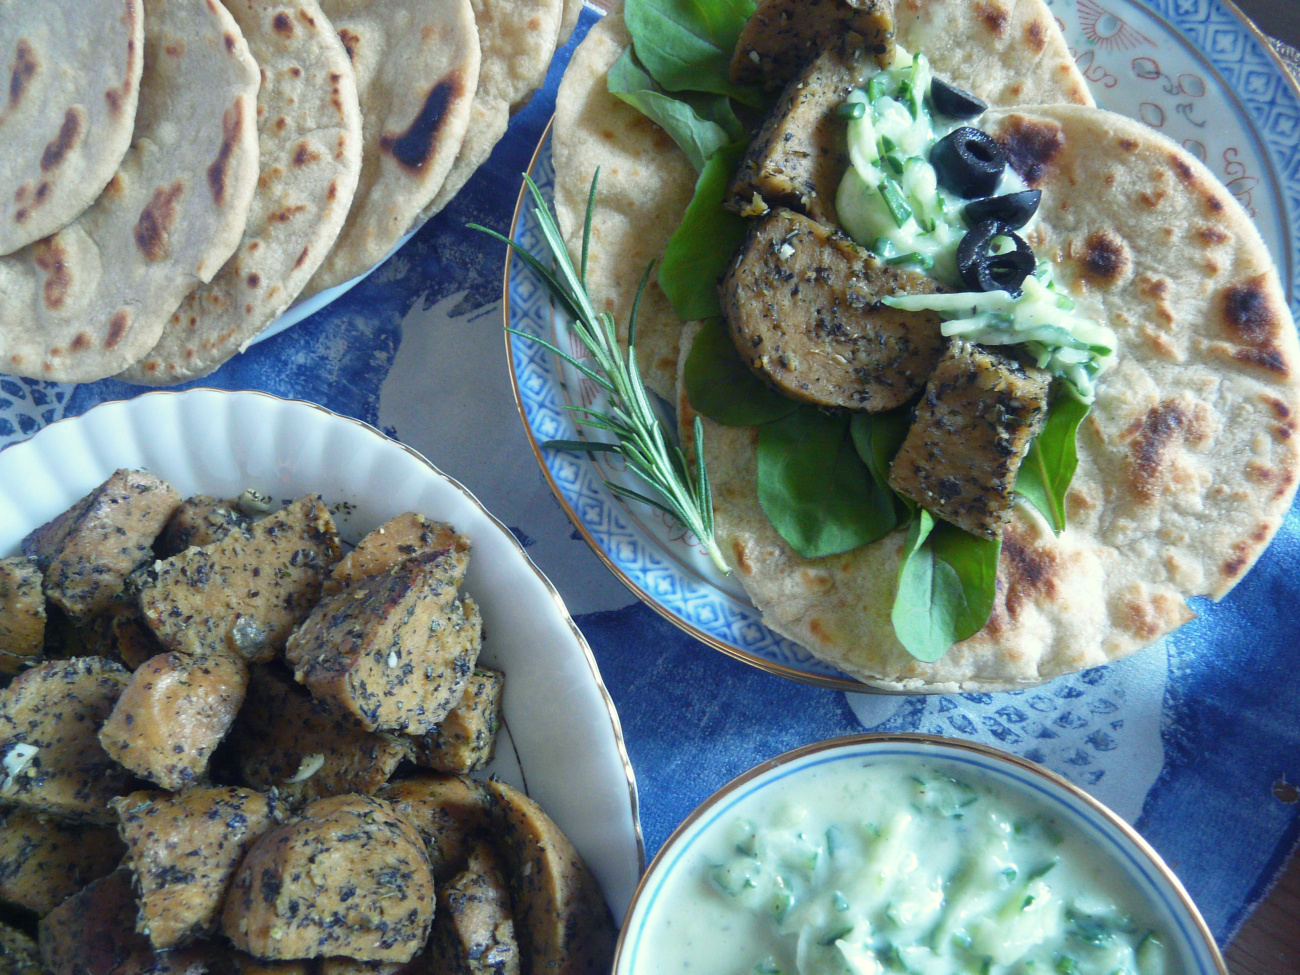 Vegan seitan tacos with homemade flatbreads and cucumber dressing